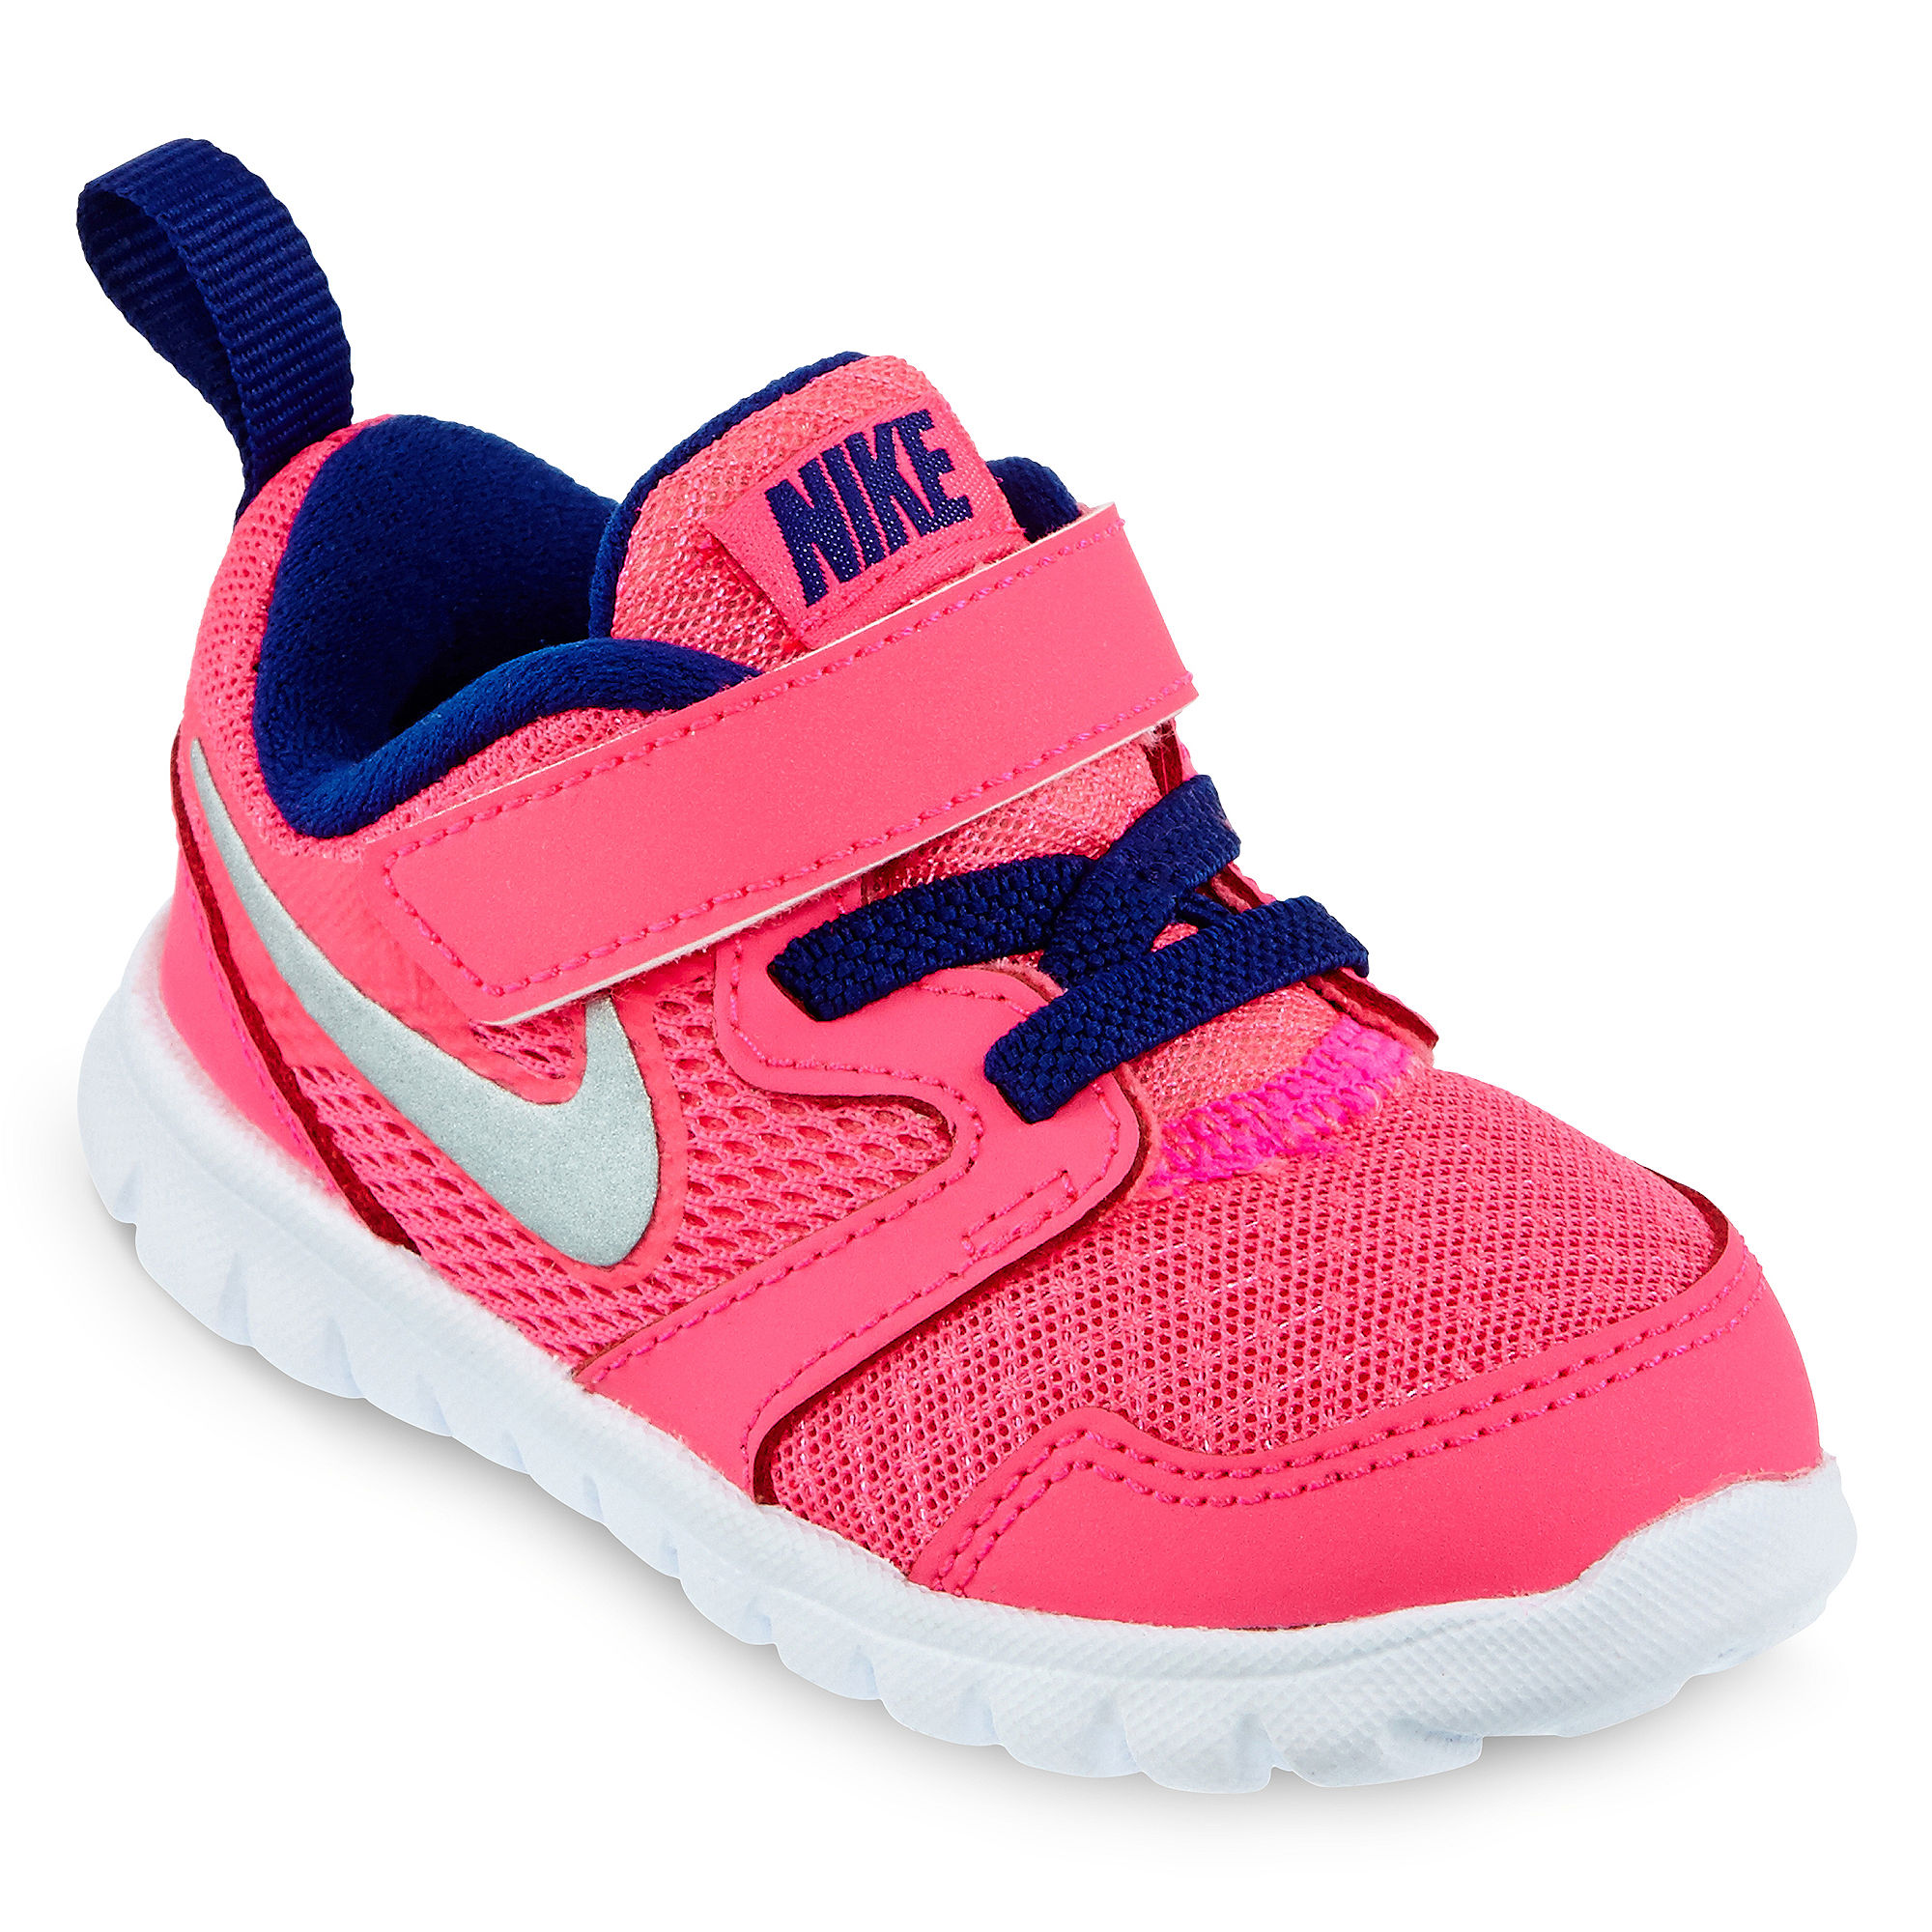 UPC 883418127596 product image for New Nike Baby Girl's Flex Experience 3  Athletic Shoes Hyper Pink